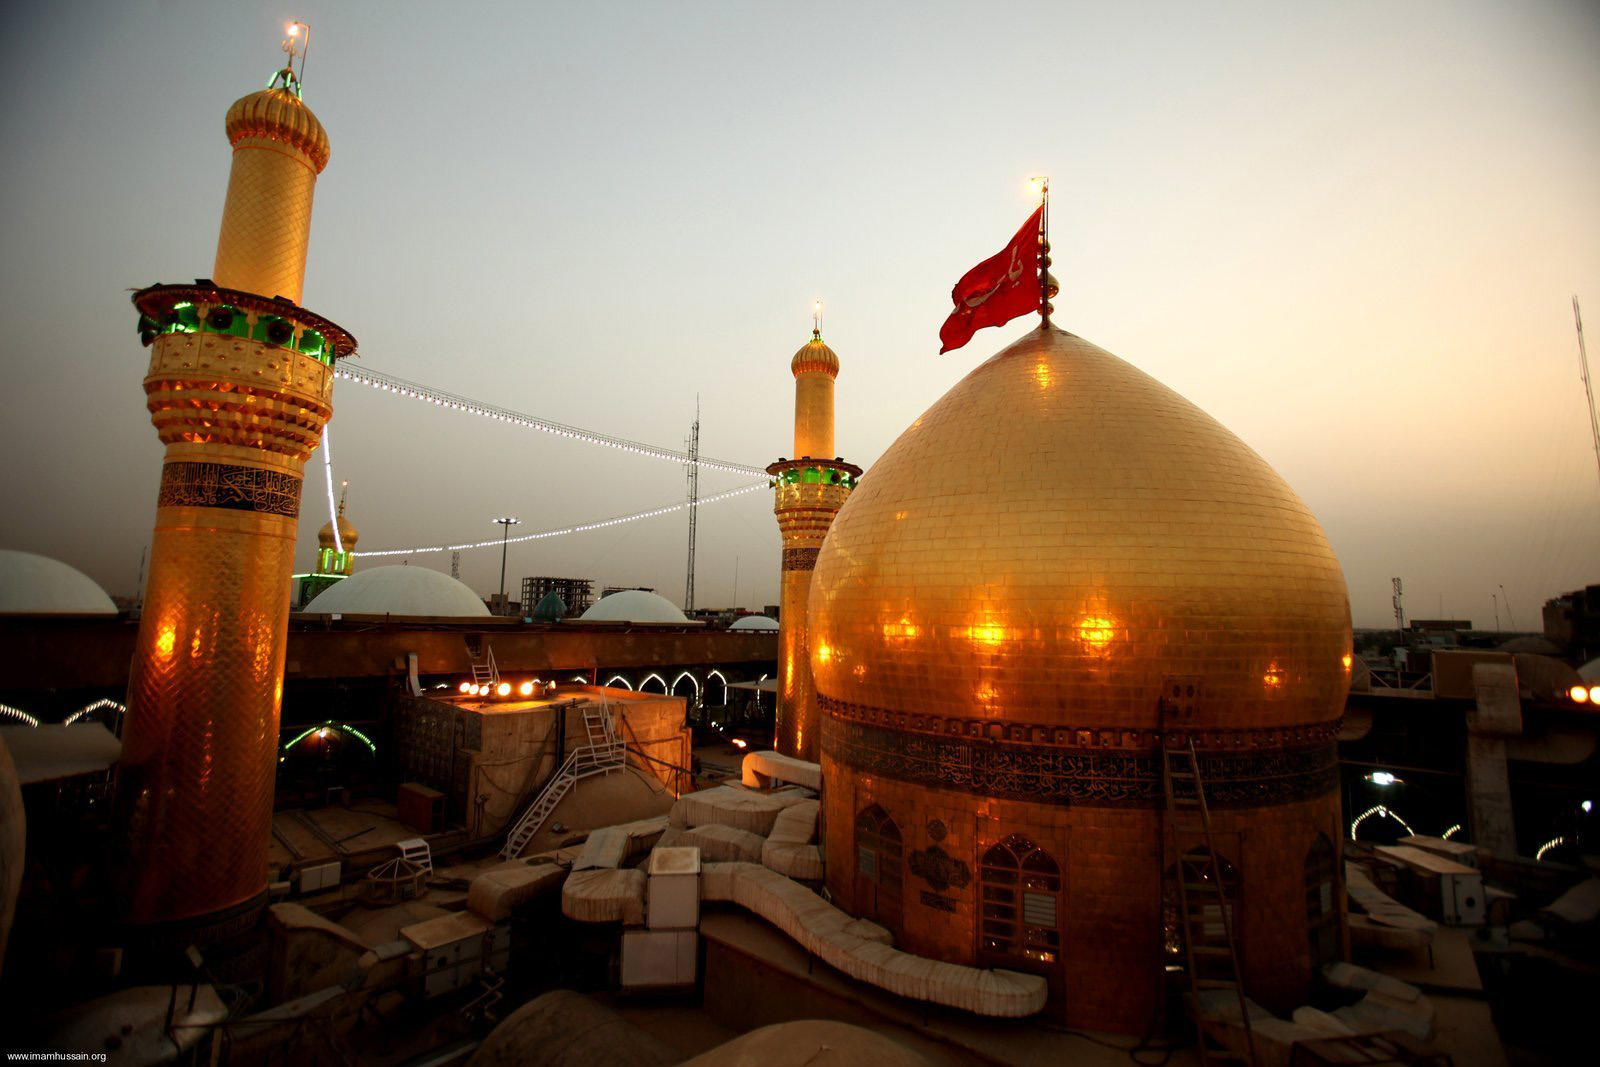 Maula Ali Shrine Wallpaper: When I Introduced Imam Hussain To My School